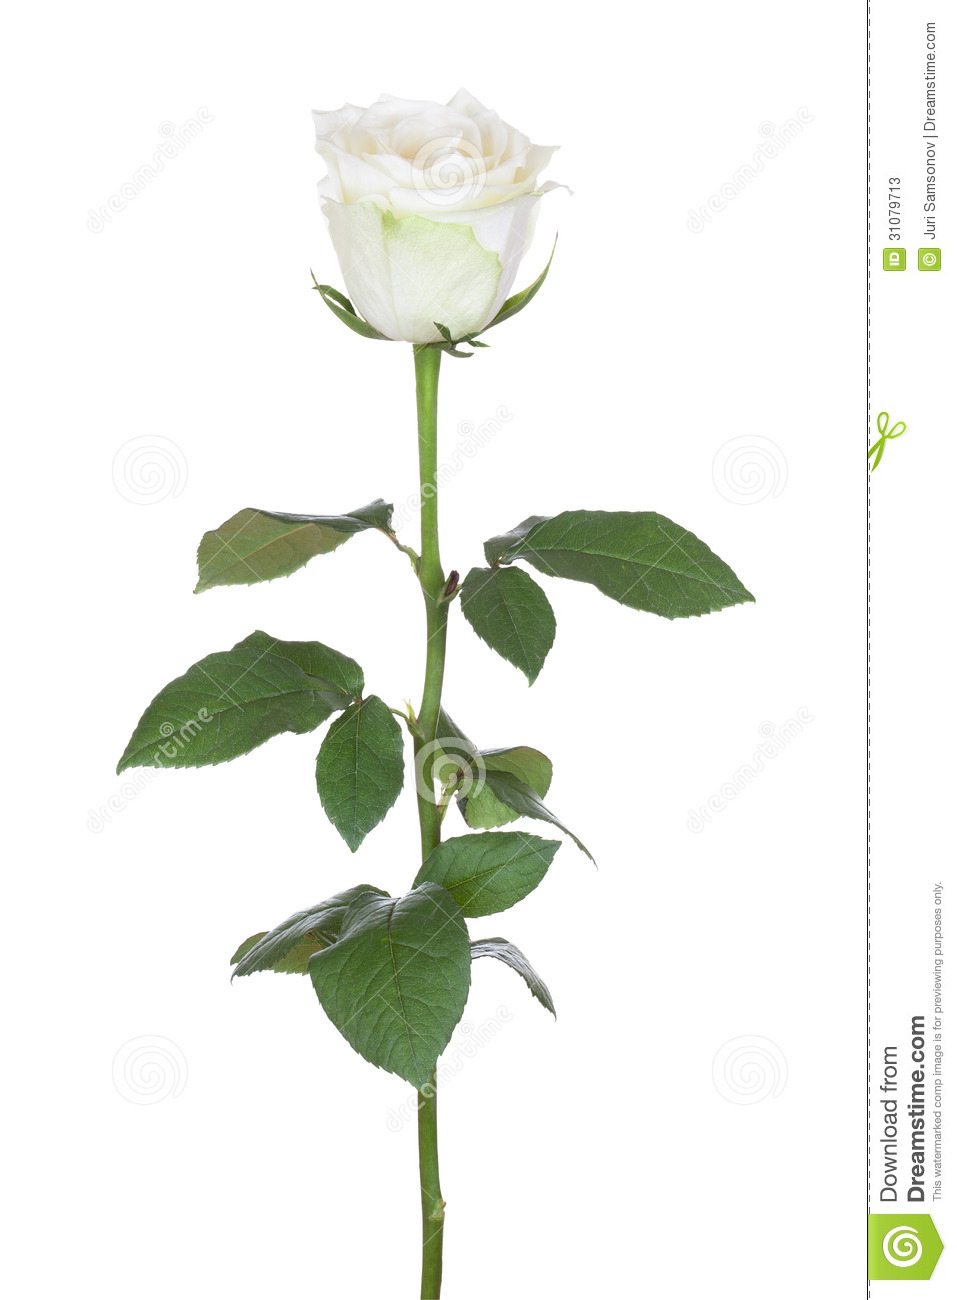 eleletsitz: Single White Rose Stem Images